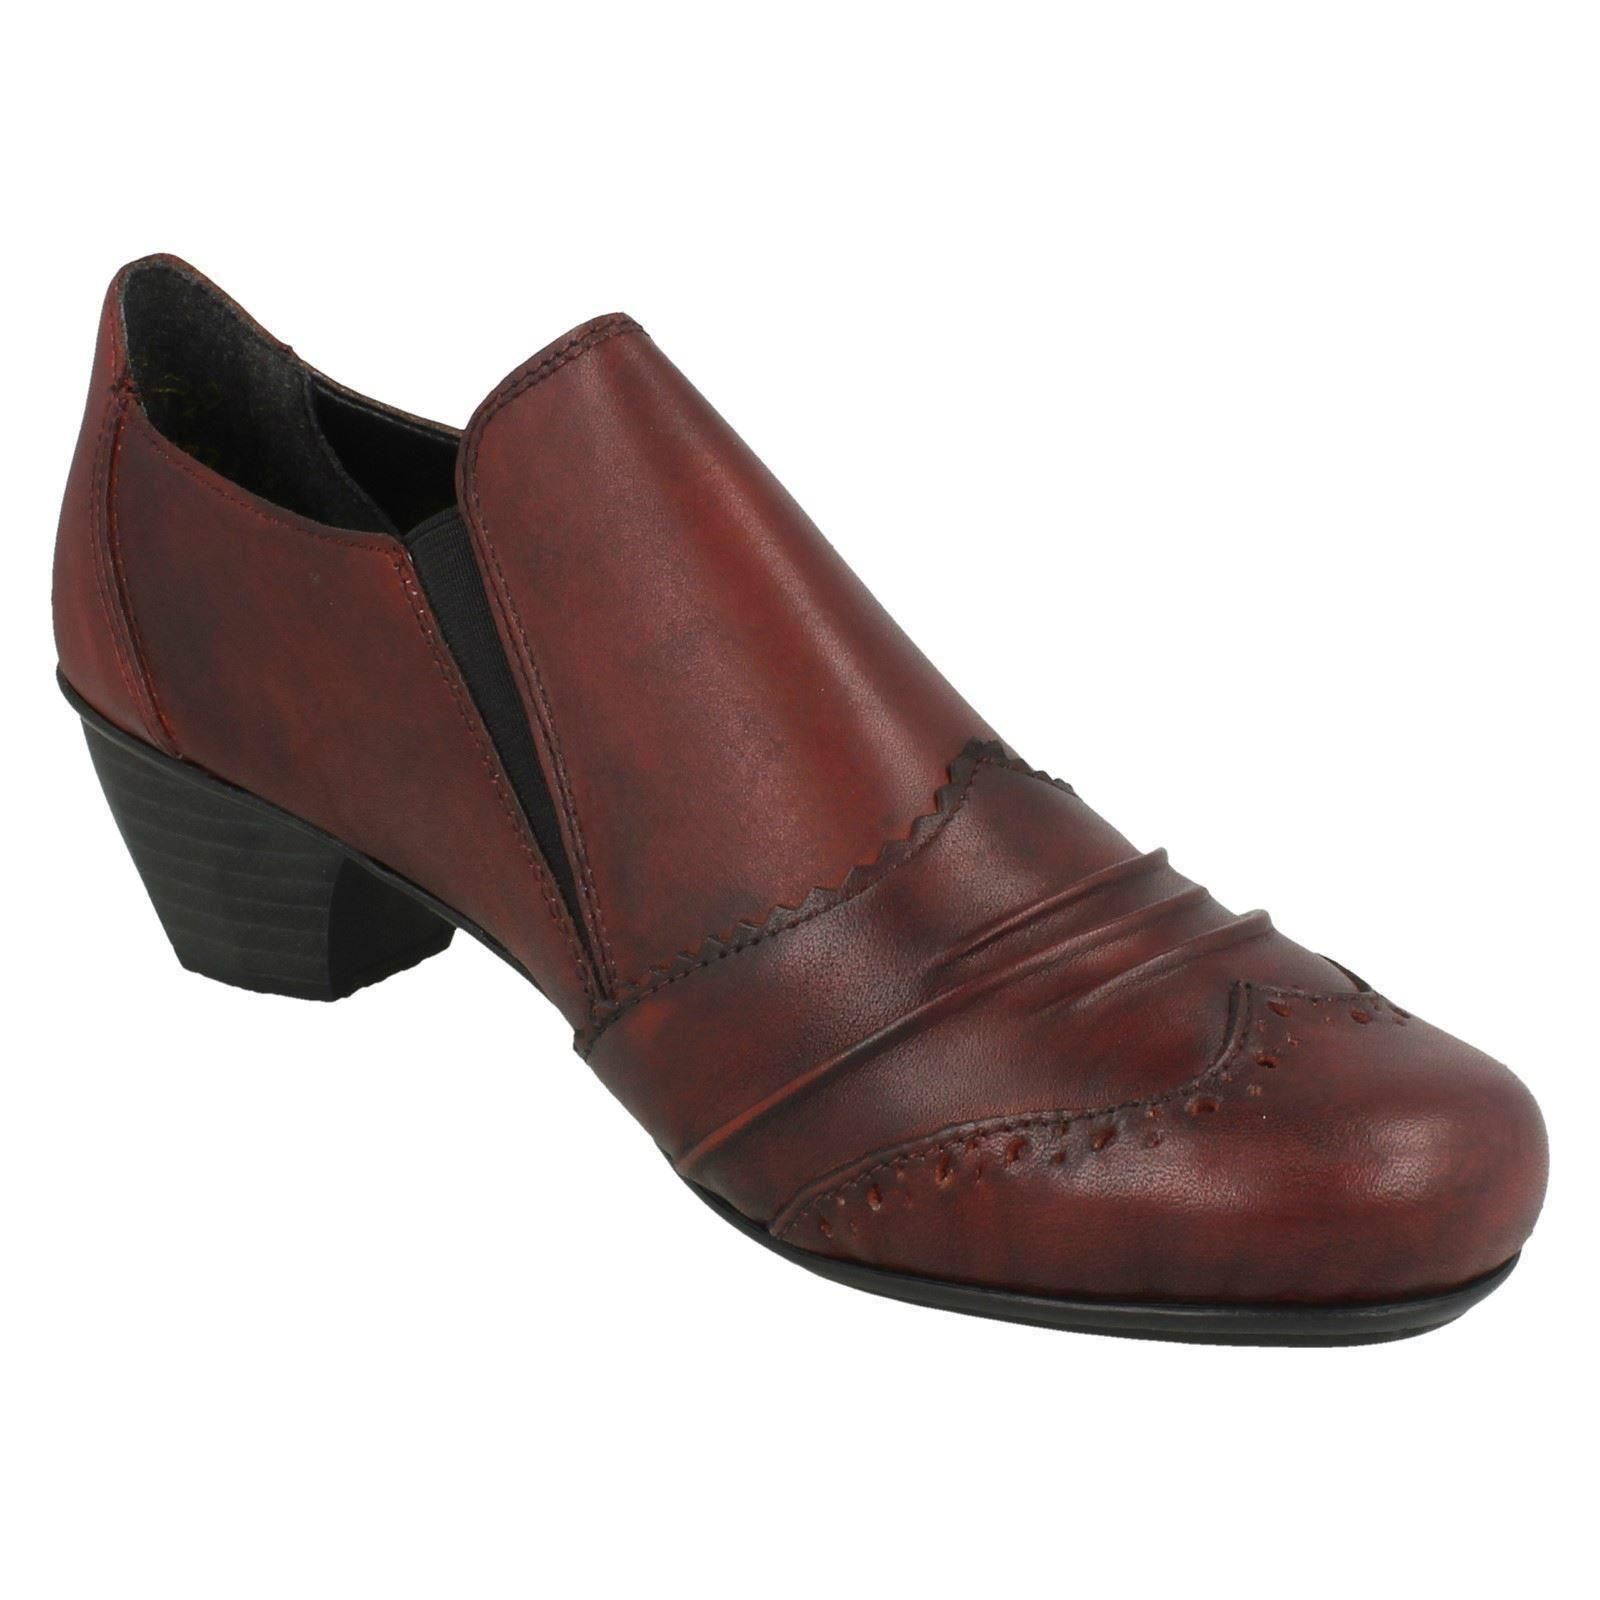 Rieker Ladies Heeled 41730 Heeled Ladies Shoes With Brogue Detailing 6b7b0e